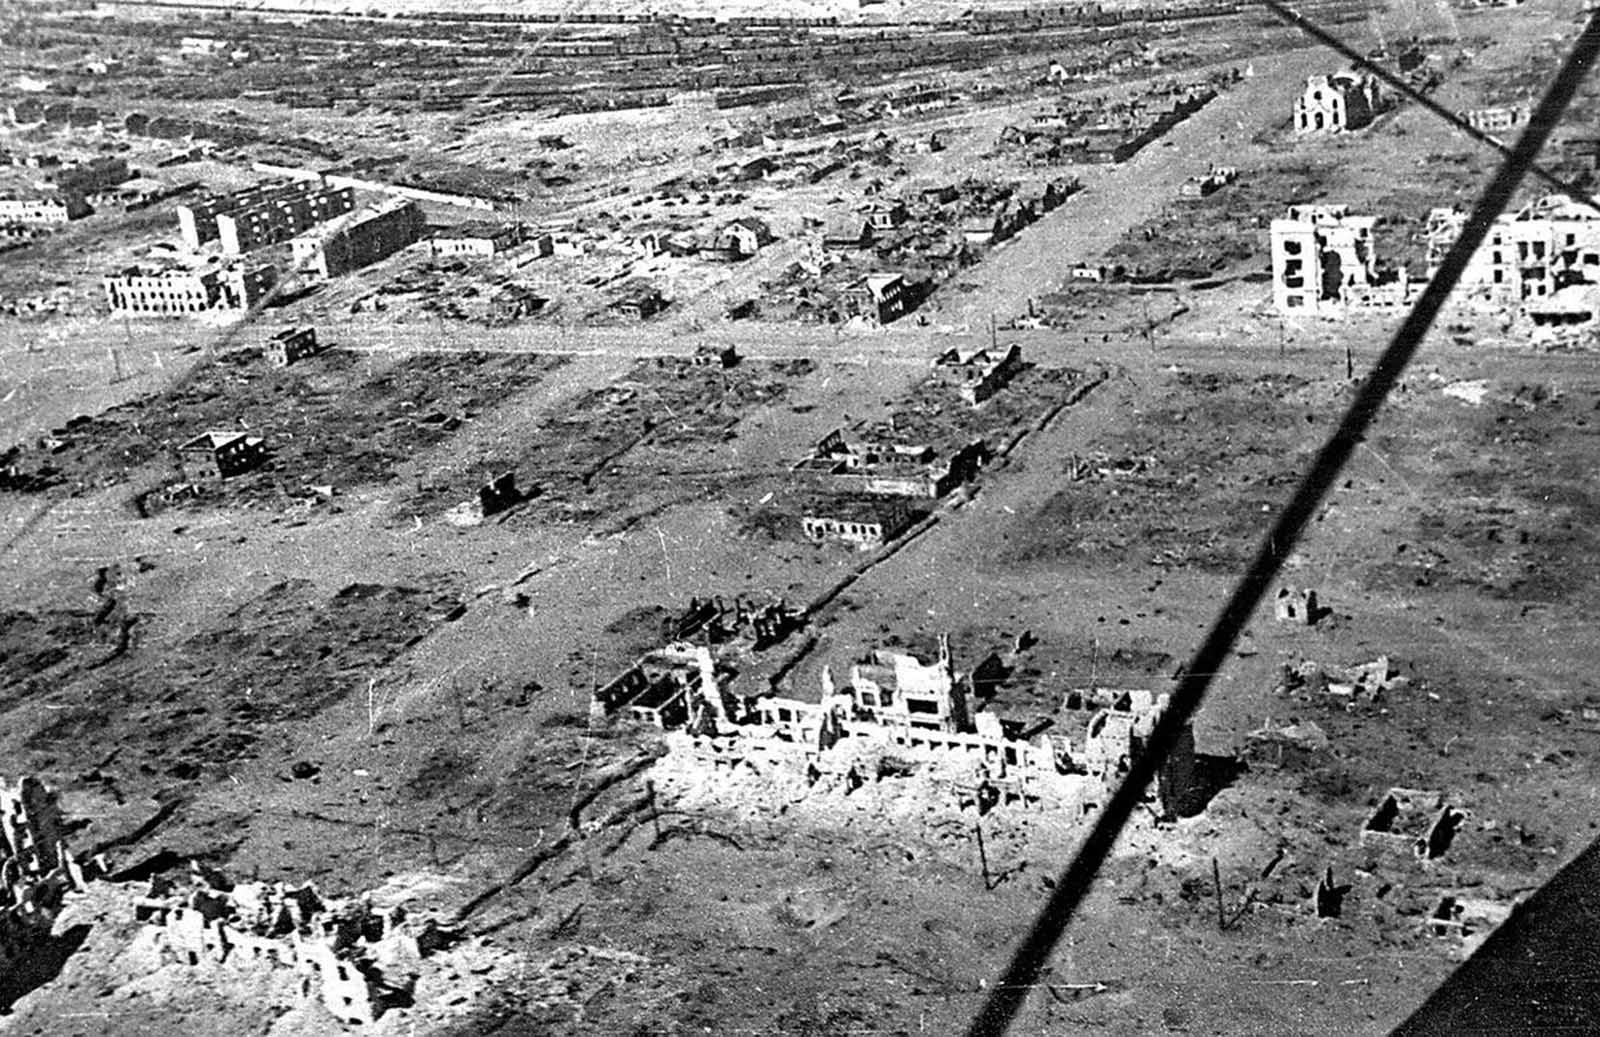 The ruins of Stalingrad -- nearly completely destroyed after some six months of brutal warfare -- seen from an aircraft after the end of hostilities, in late 1943.